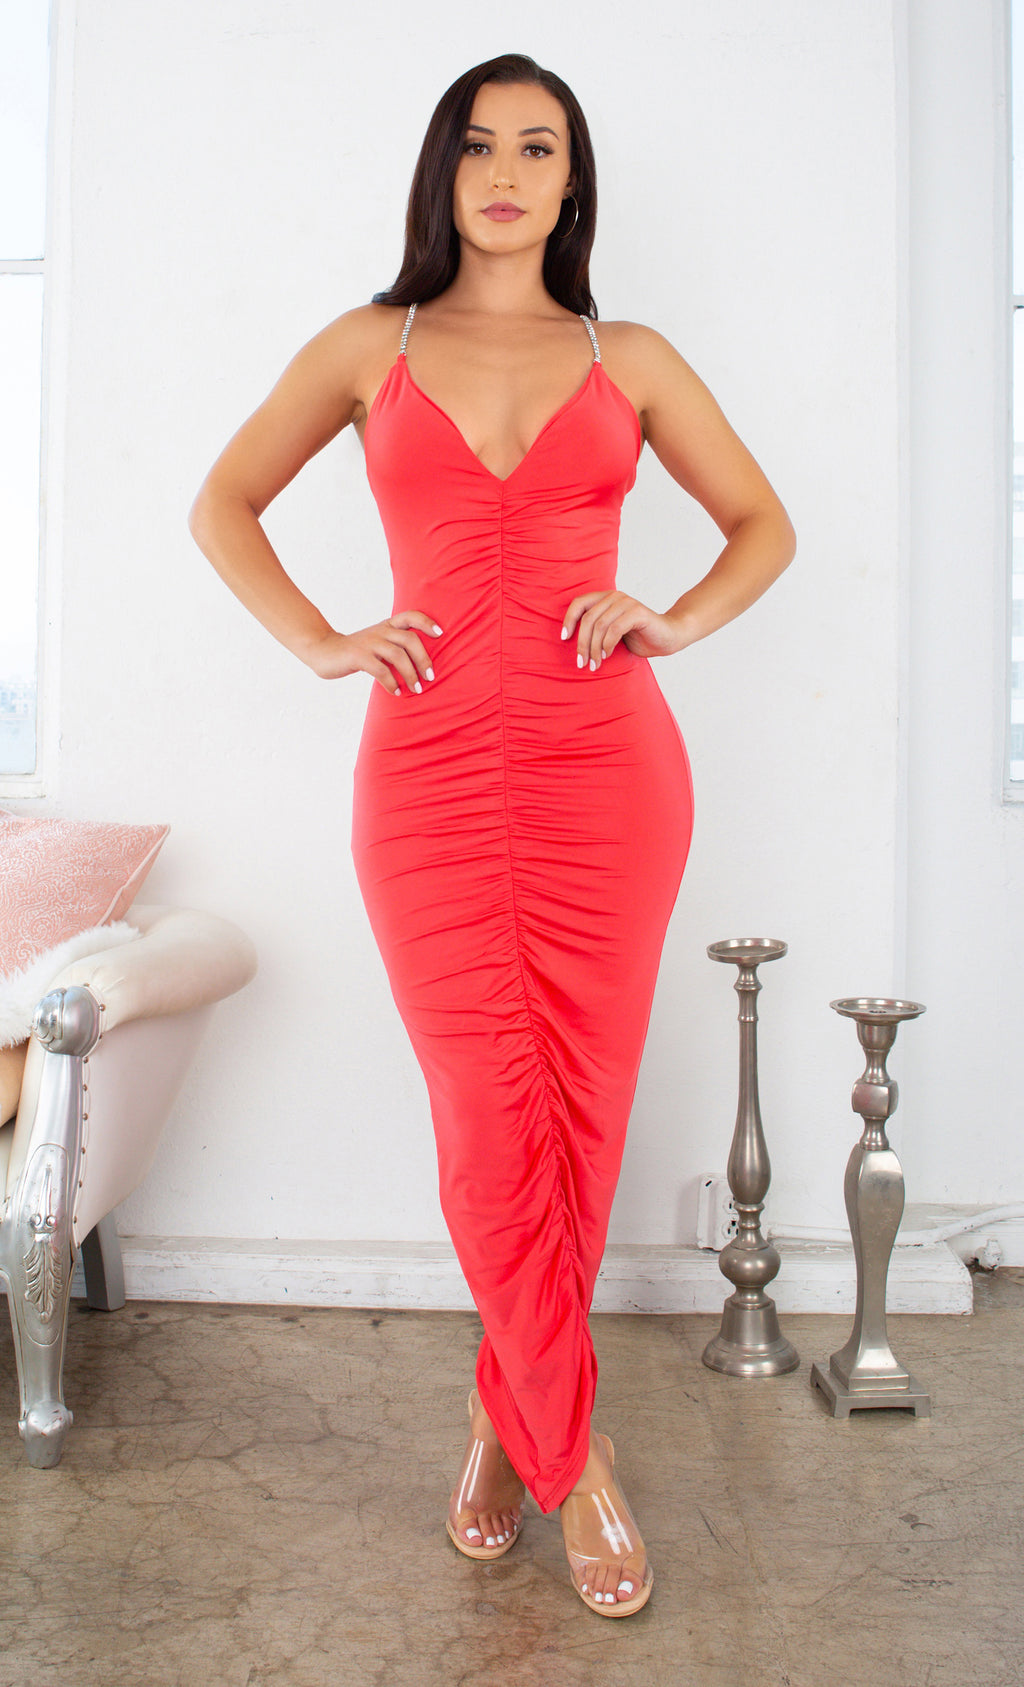 Better Than You Know Hot Coral Pink Sleeveless Rhinestone Spaghetti Strap V Neck Ruched Bodycon Maxi Dress